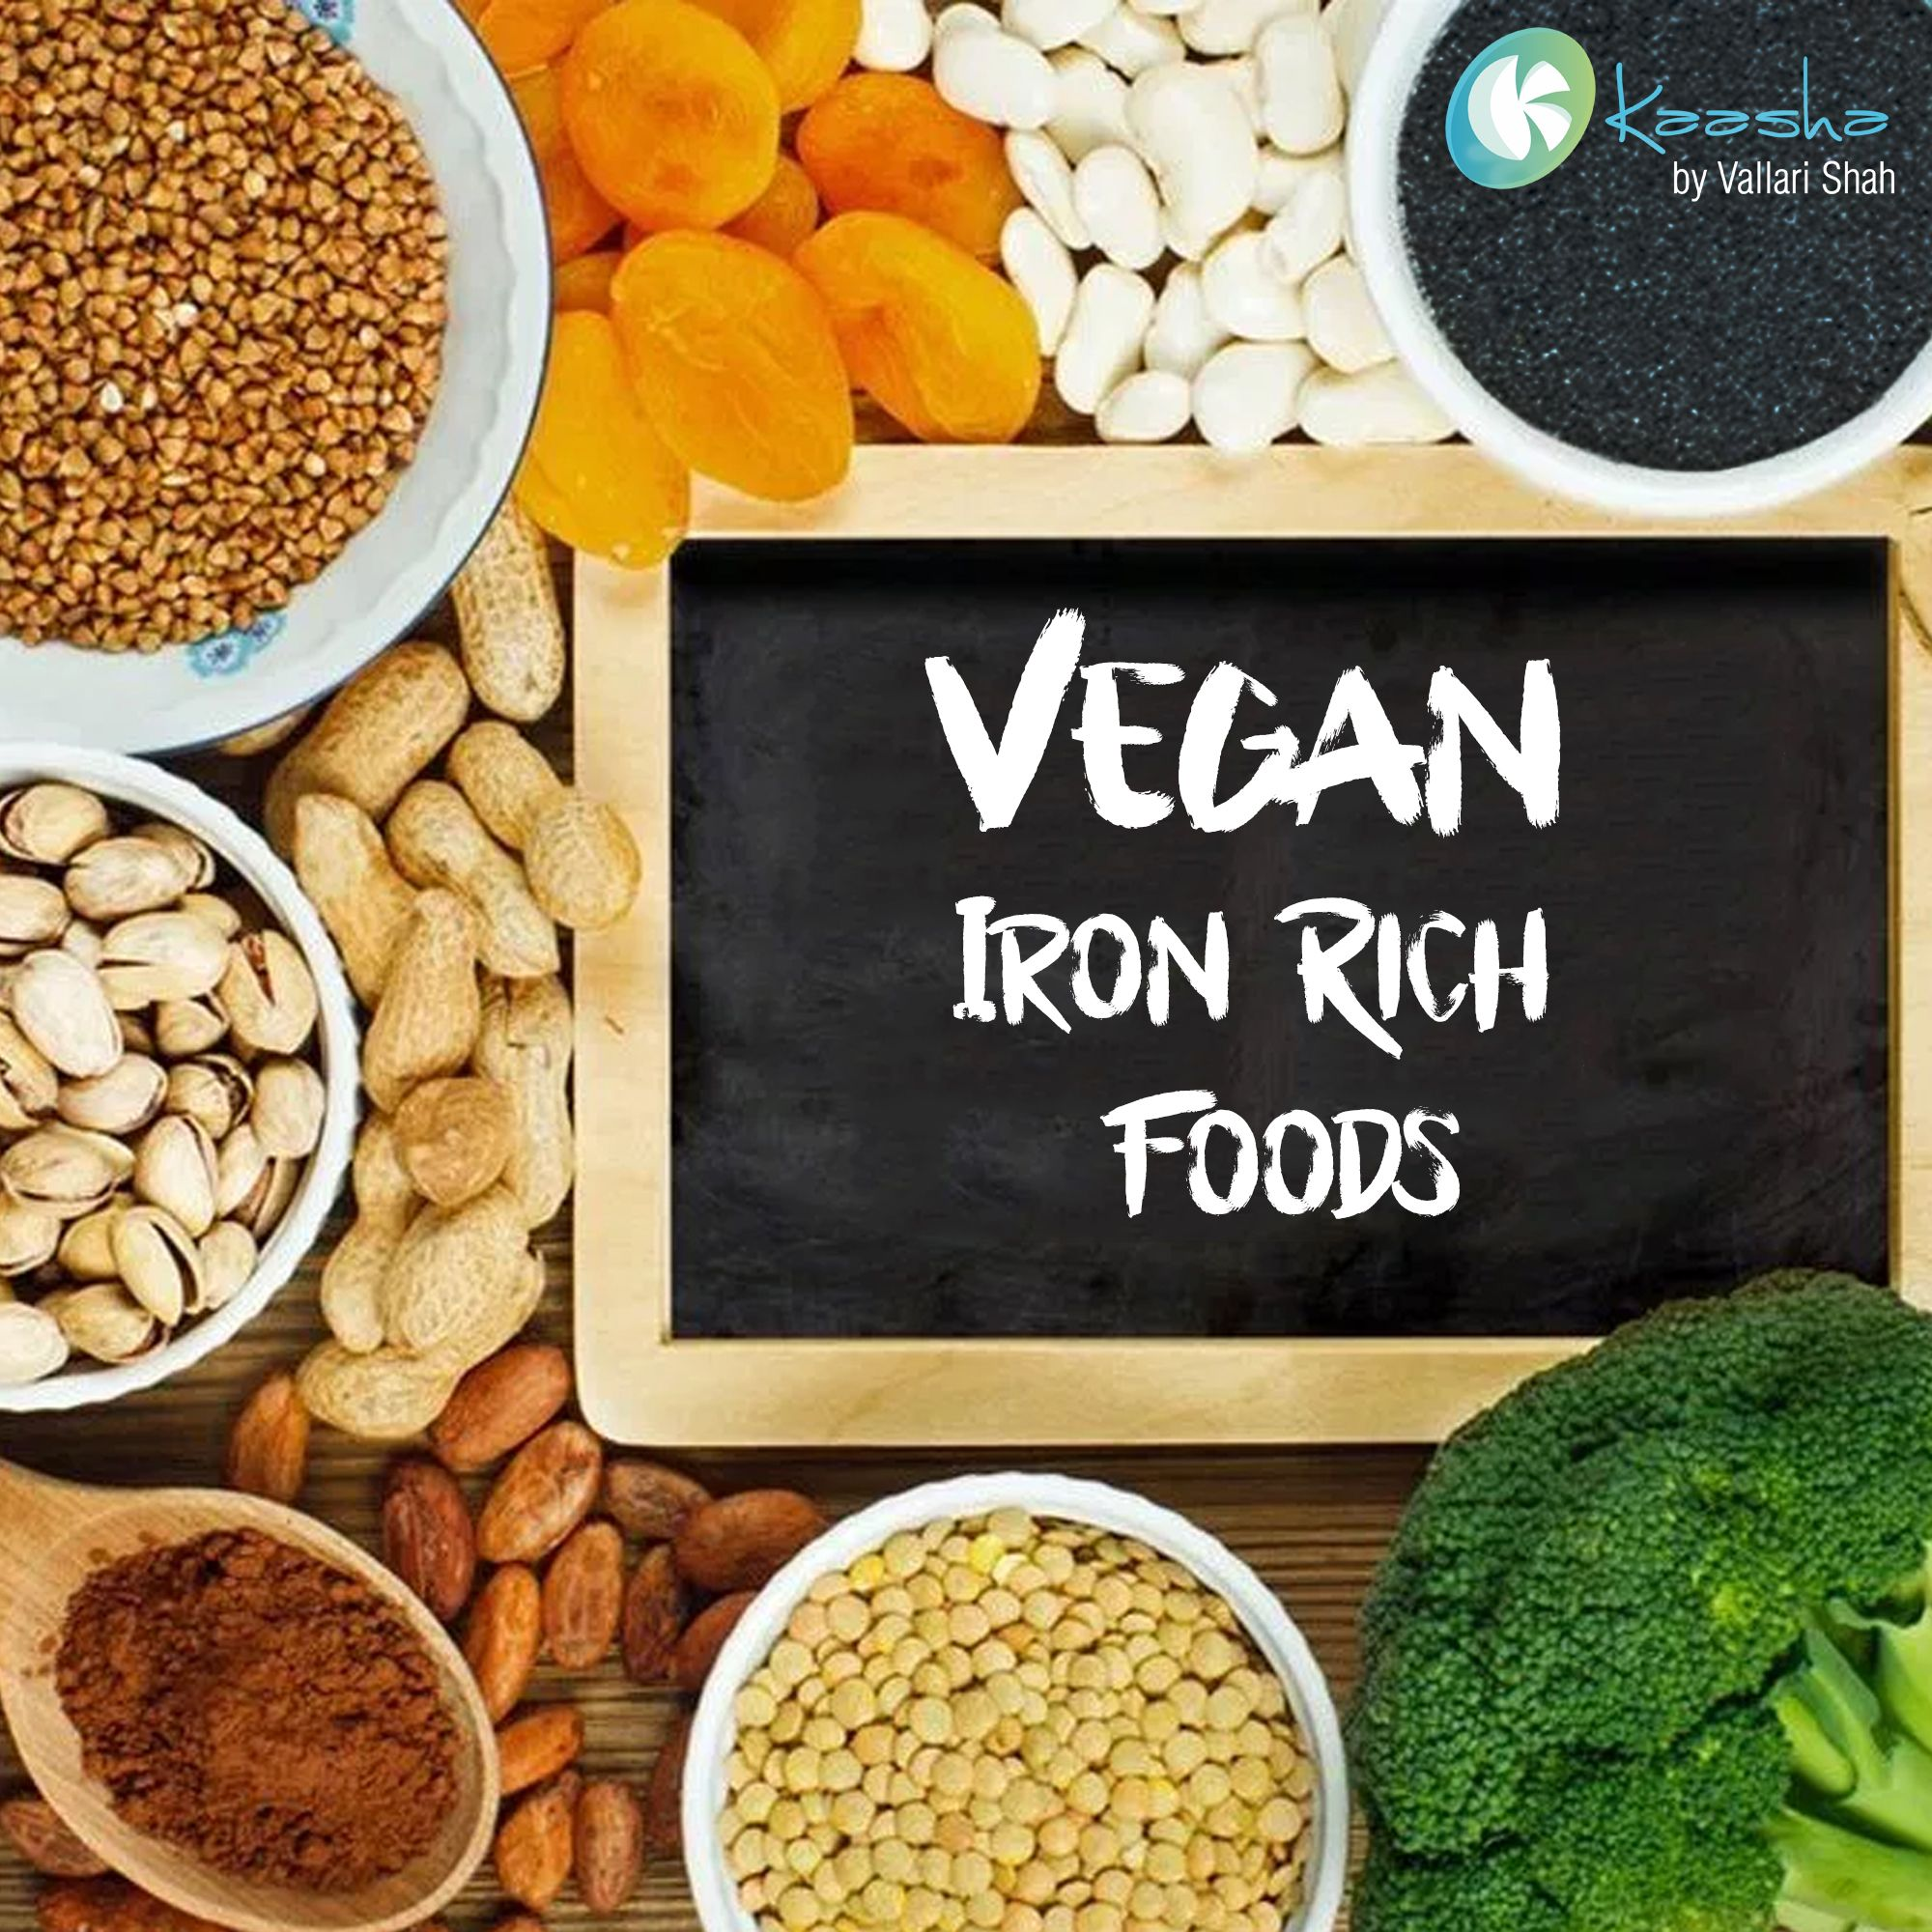 Iron is an essential nutrient that makes up a critical